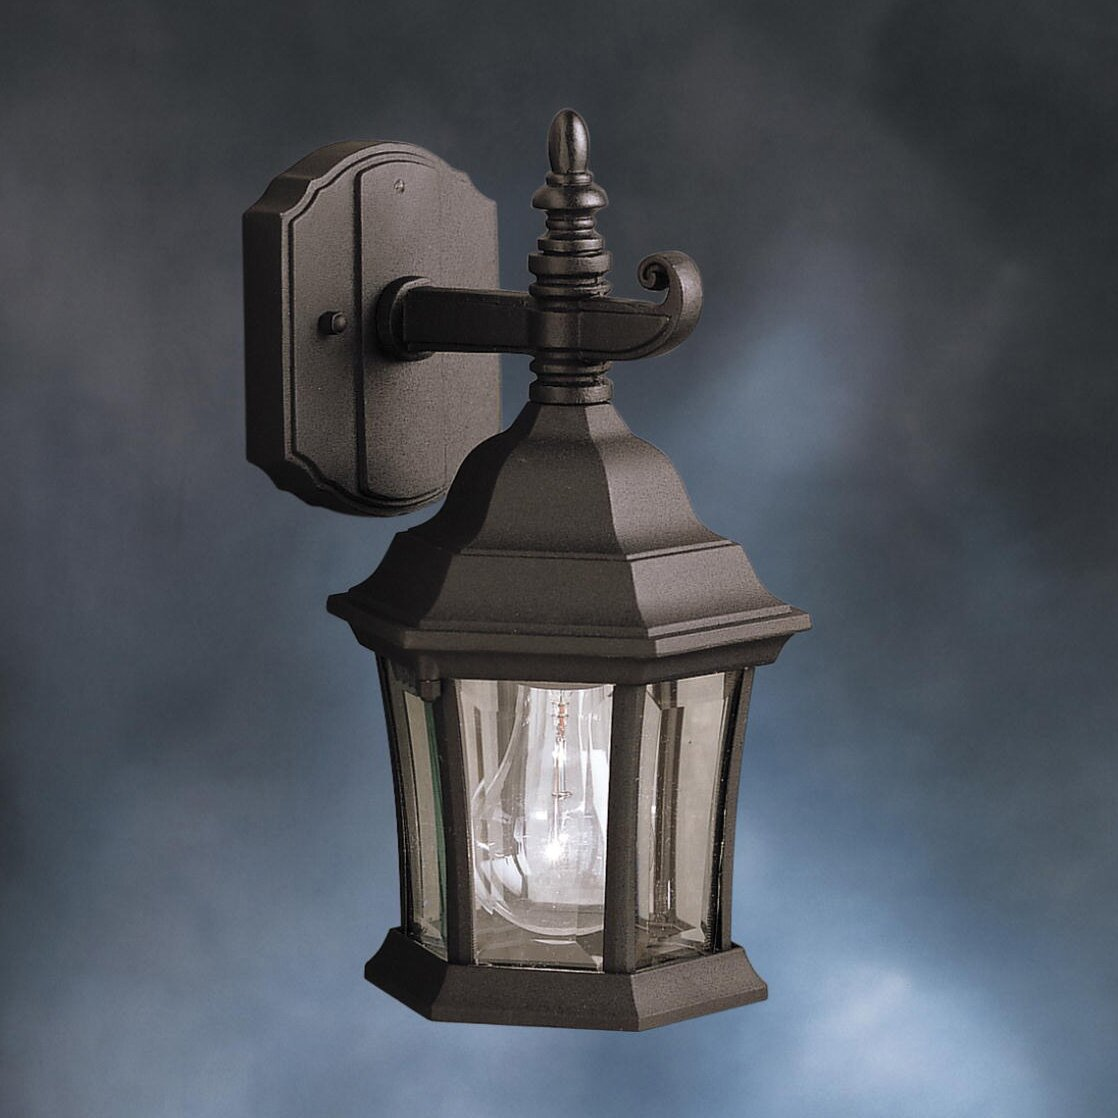 Kichler Landscape Lighting Reviews : Kichler townhouse light outdoor wall lantern reviews